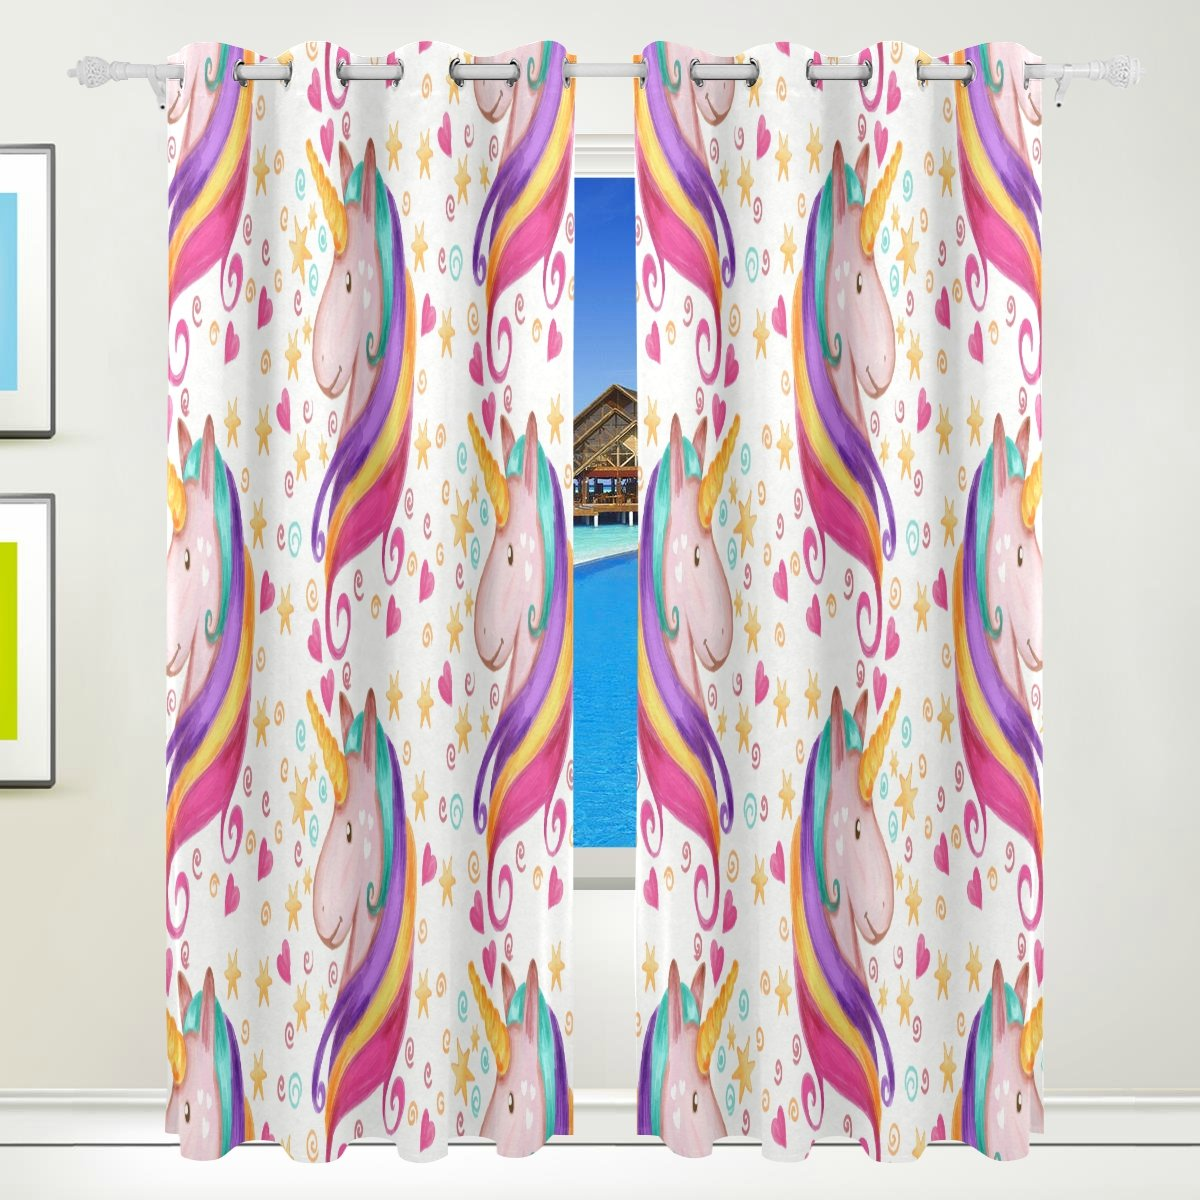 Vantaso Light Shading Window Curtains Rainbow Hair Unicorn With Stars Polyester 2 Pannels for Kids Girls Boys Bedroom Living Room 84 inch x 55 inch